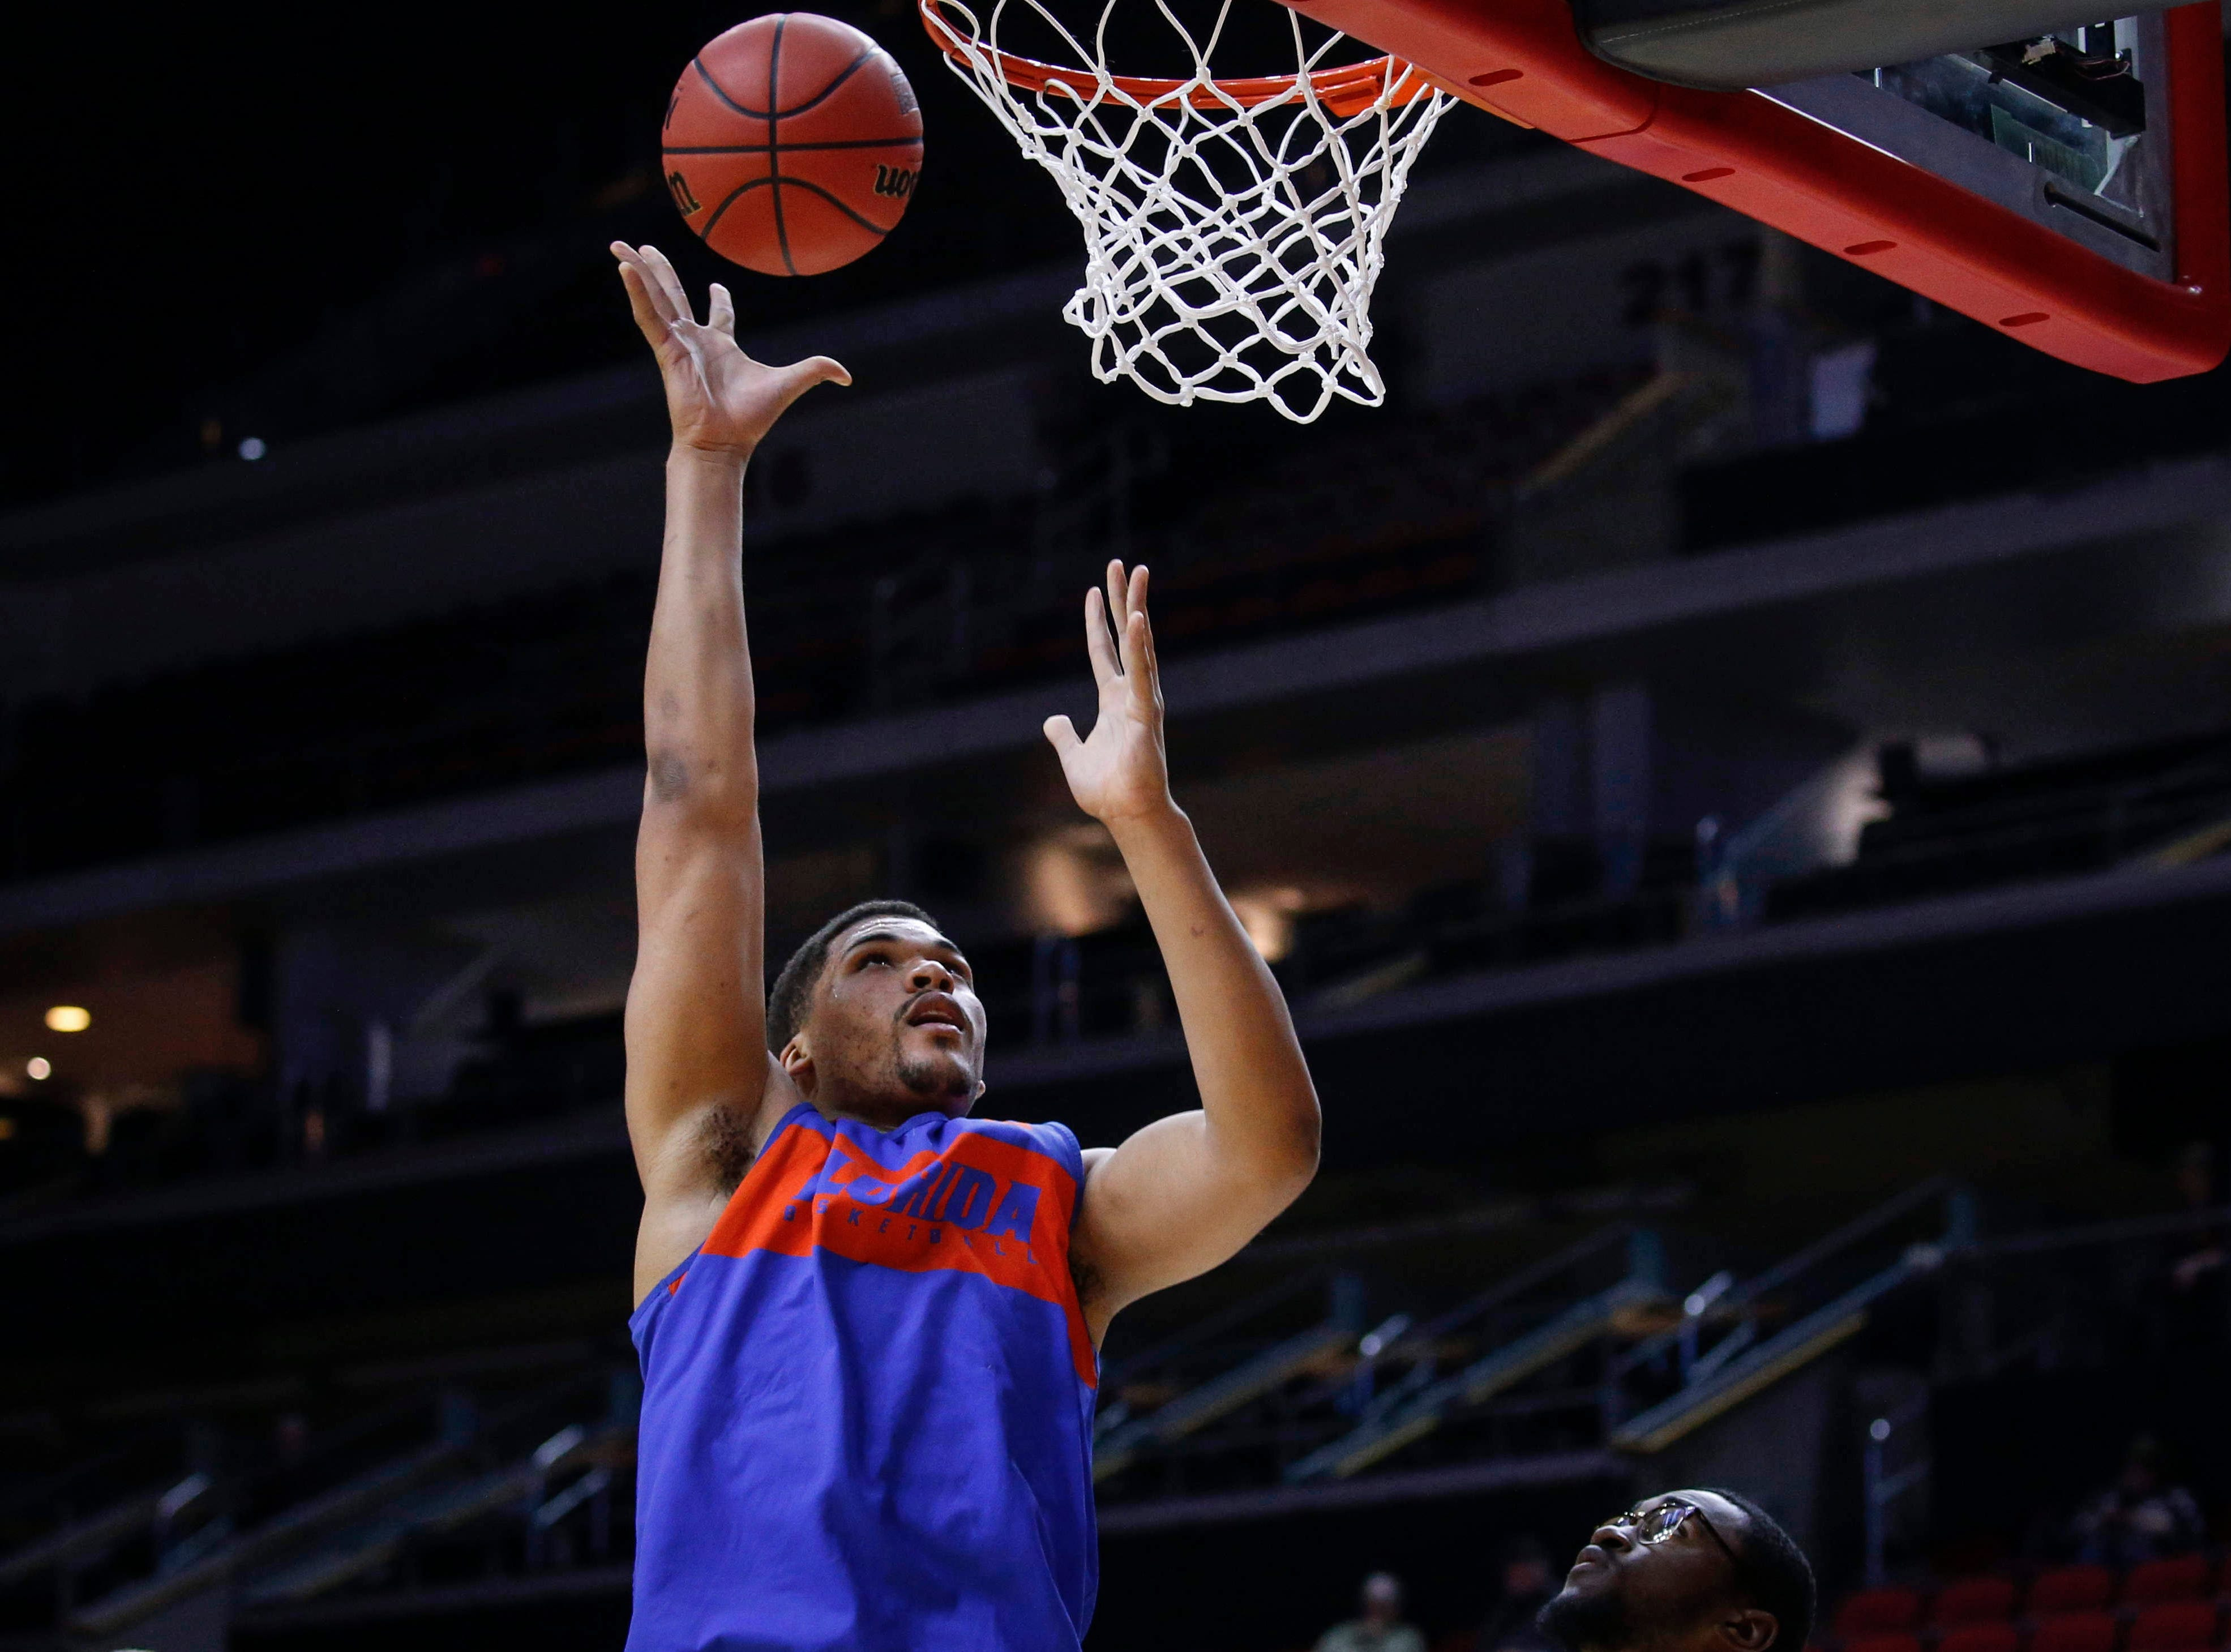 Florida freshman Isaiah Stokes puts the ball in the net during open practice on Wednesday, March 20, 2019, at Wells Fargo Arena in Des Moines, Iowa.